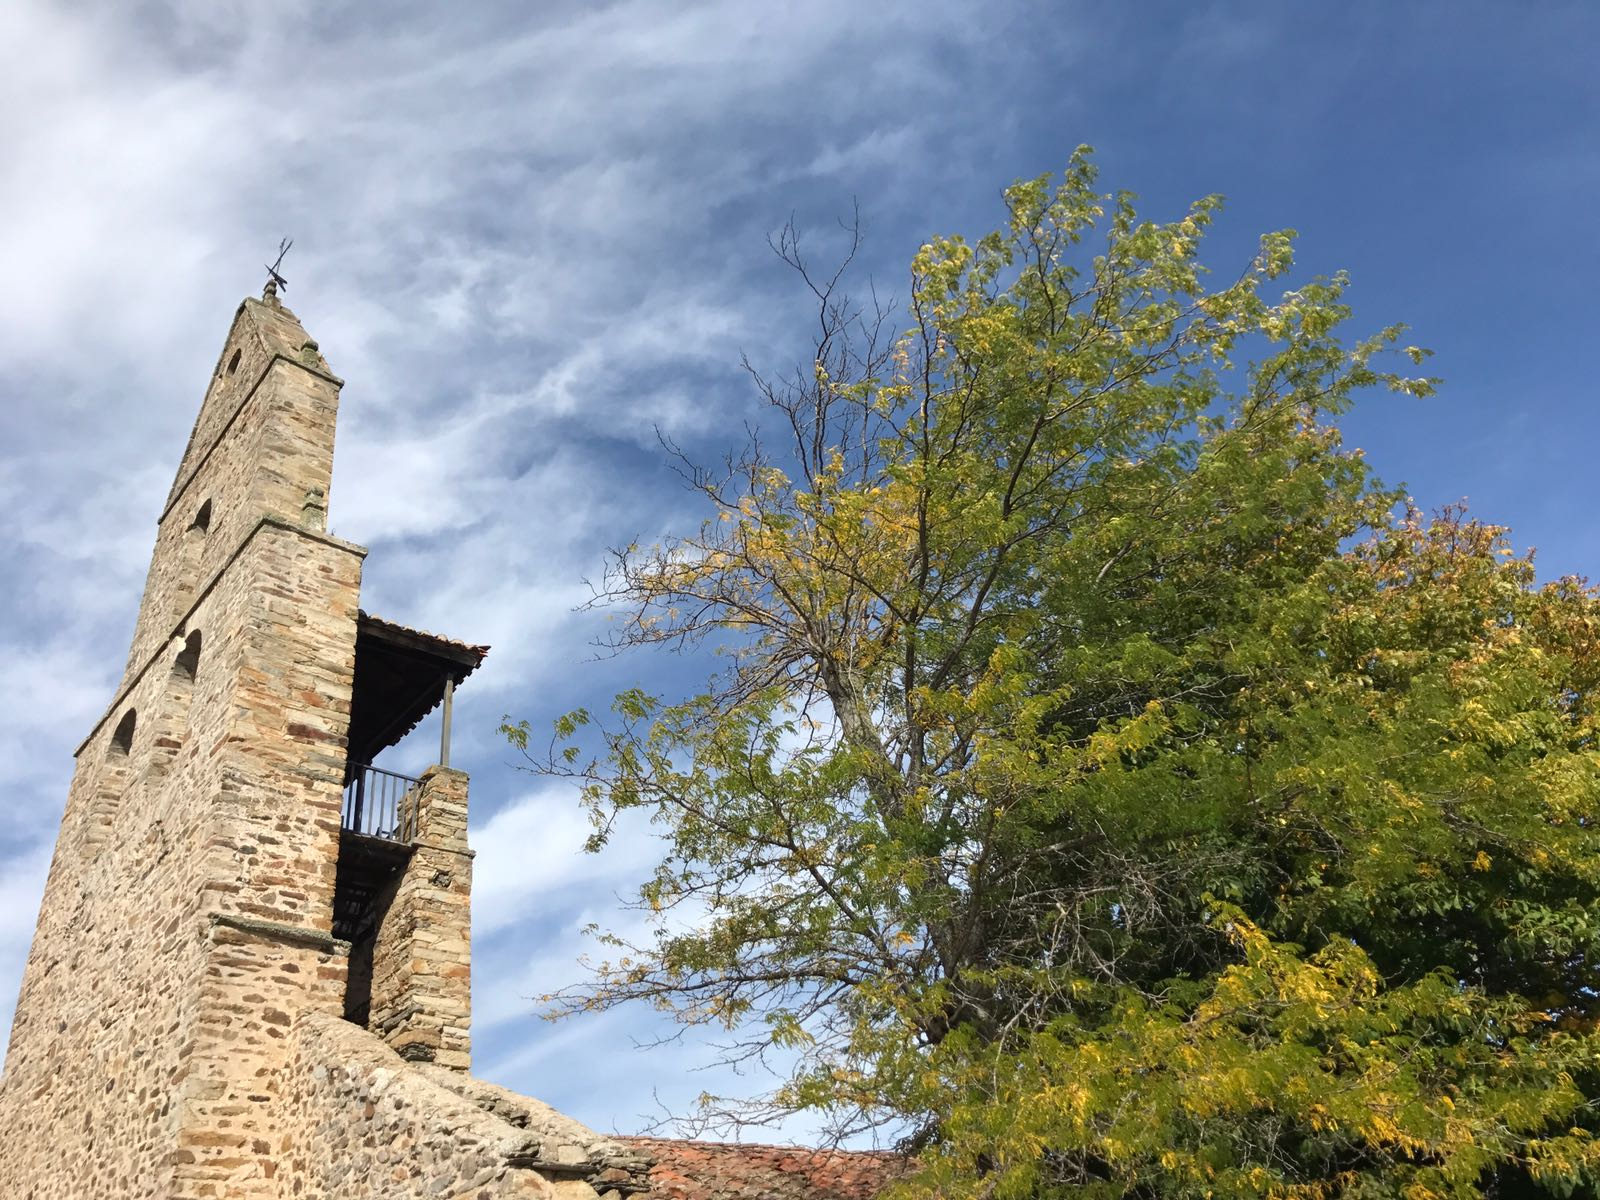 Church in Rabanal with bell tower in front of a blue sky